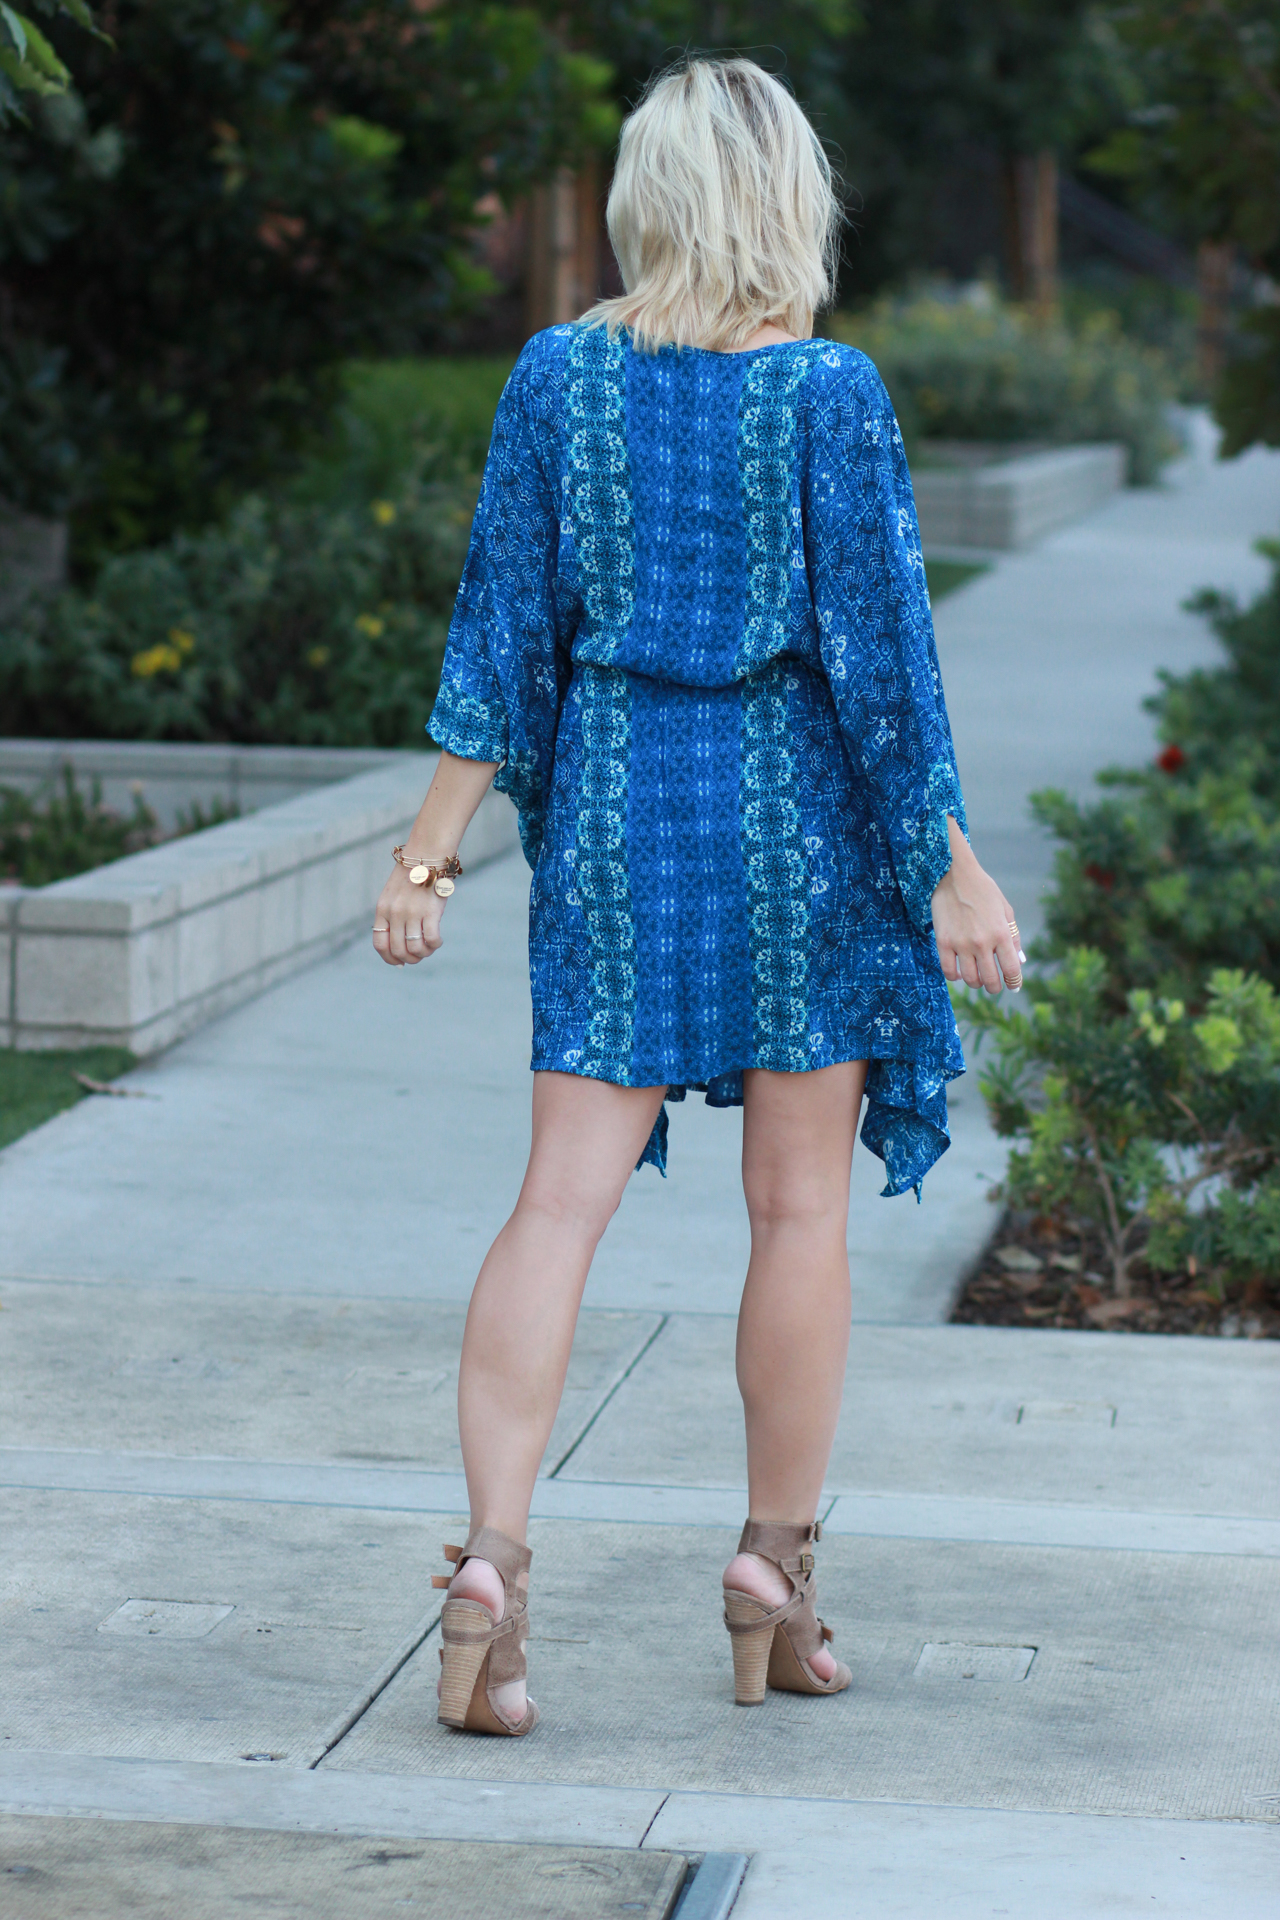 Blue Caftan Dress from Forever 21 | StyledByBlondie.com